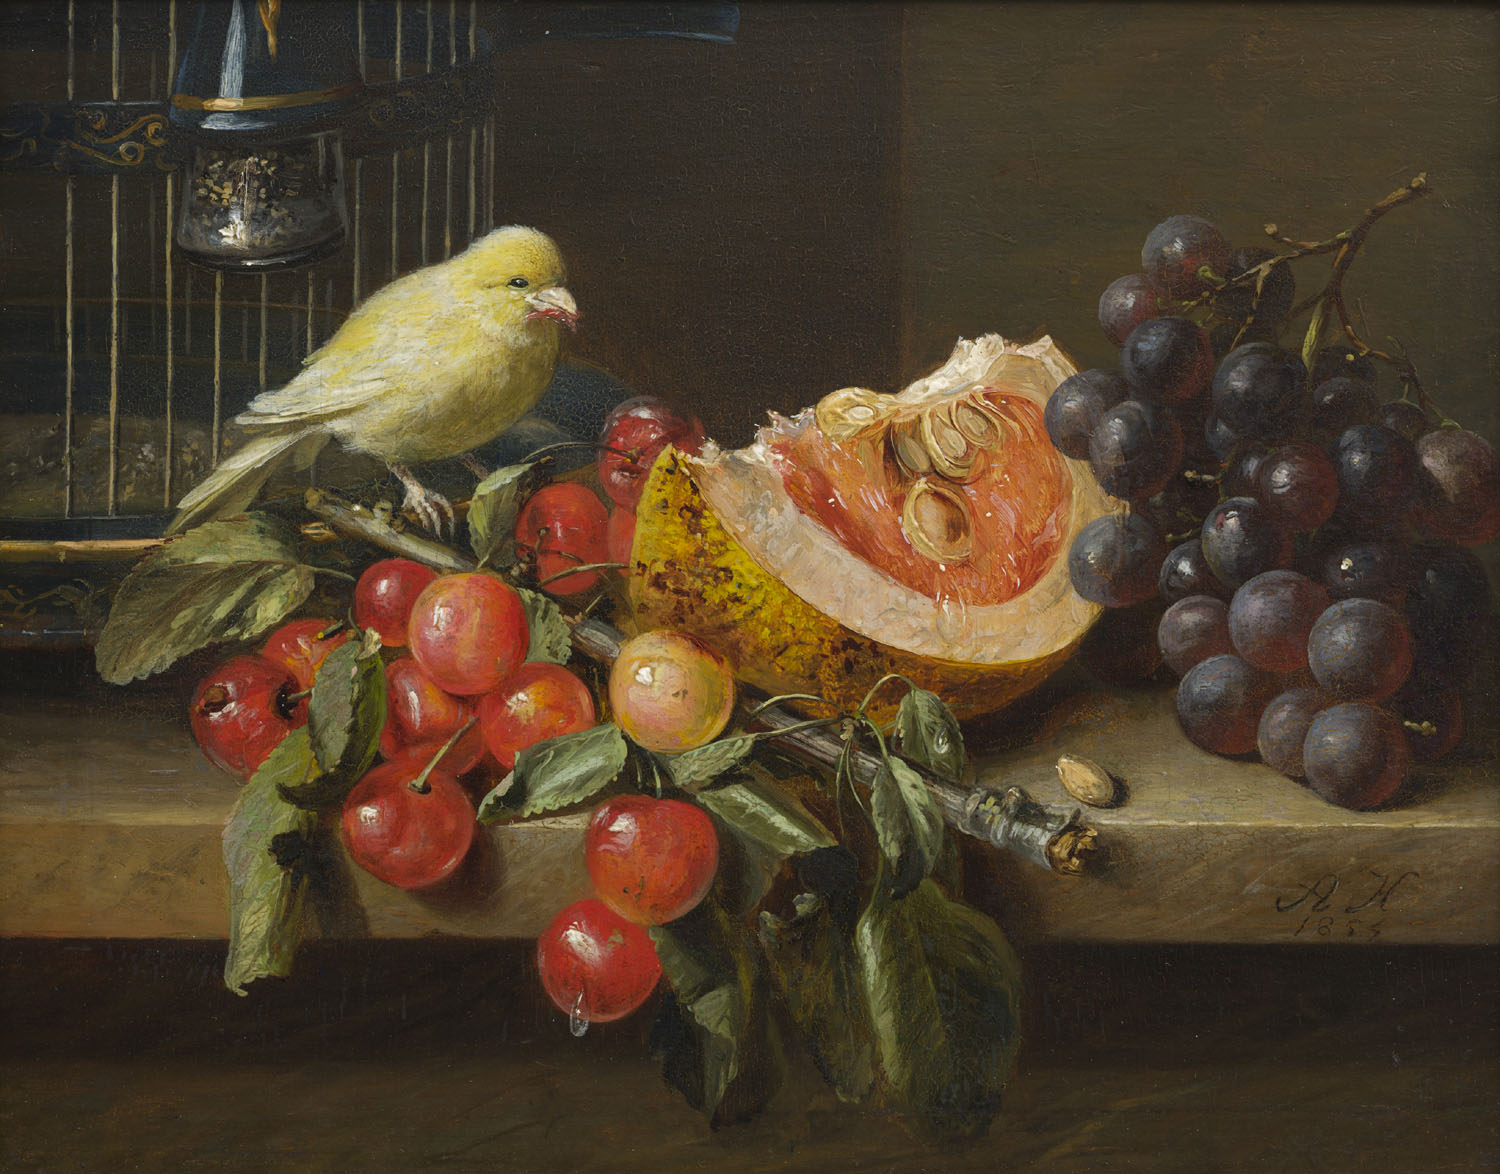 Adriana Haanen | A still life with fruit and a canary | Kunsthandel Bies | Bies Gallery